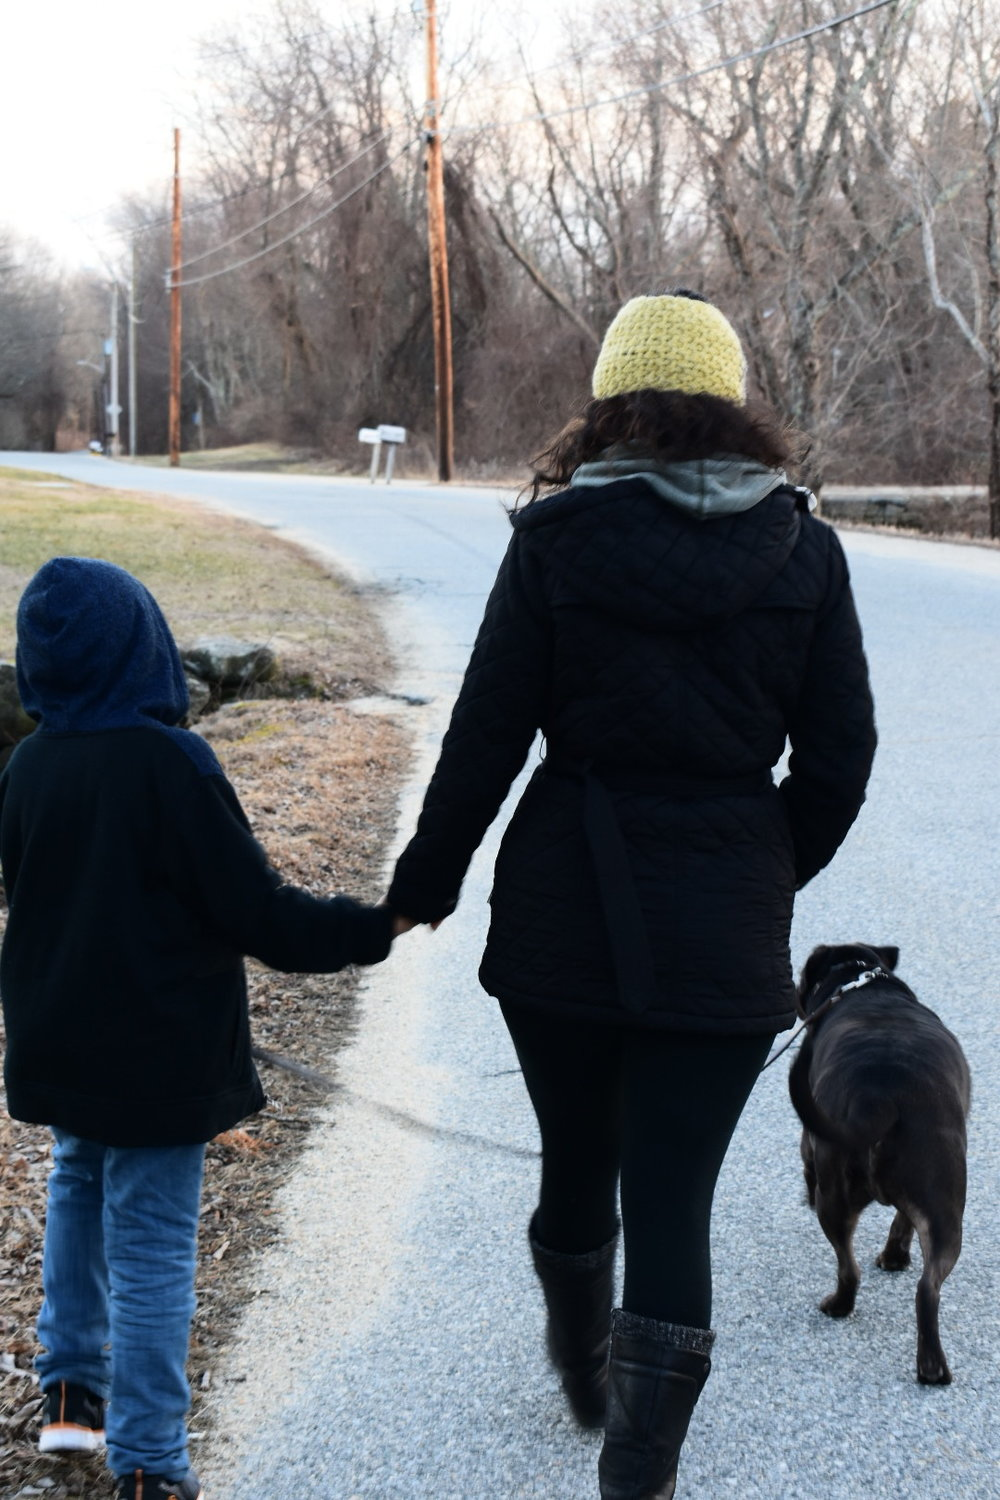 Me and my son on an evening walk with our dog, Marciello  Photo Credit: Nicholas Galvan